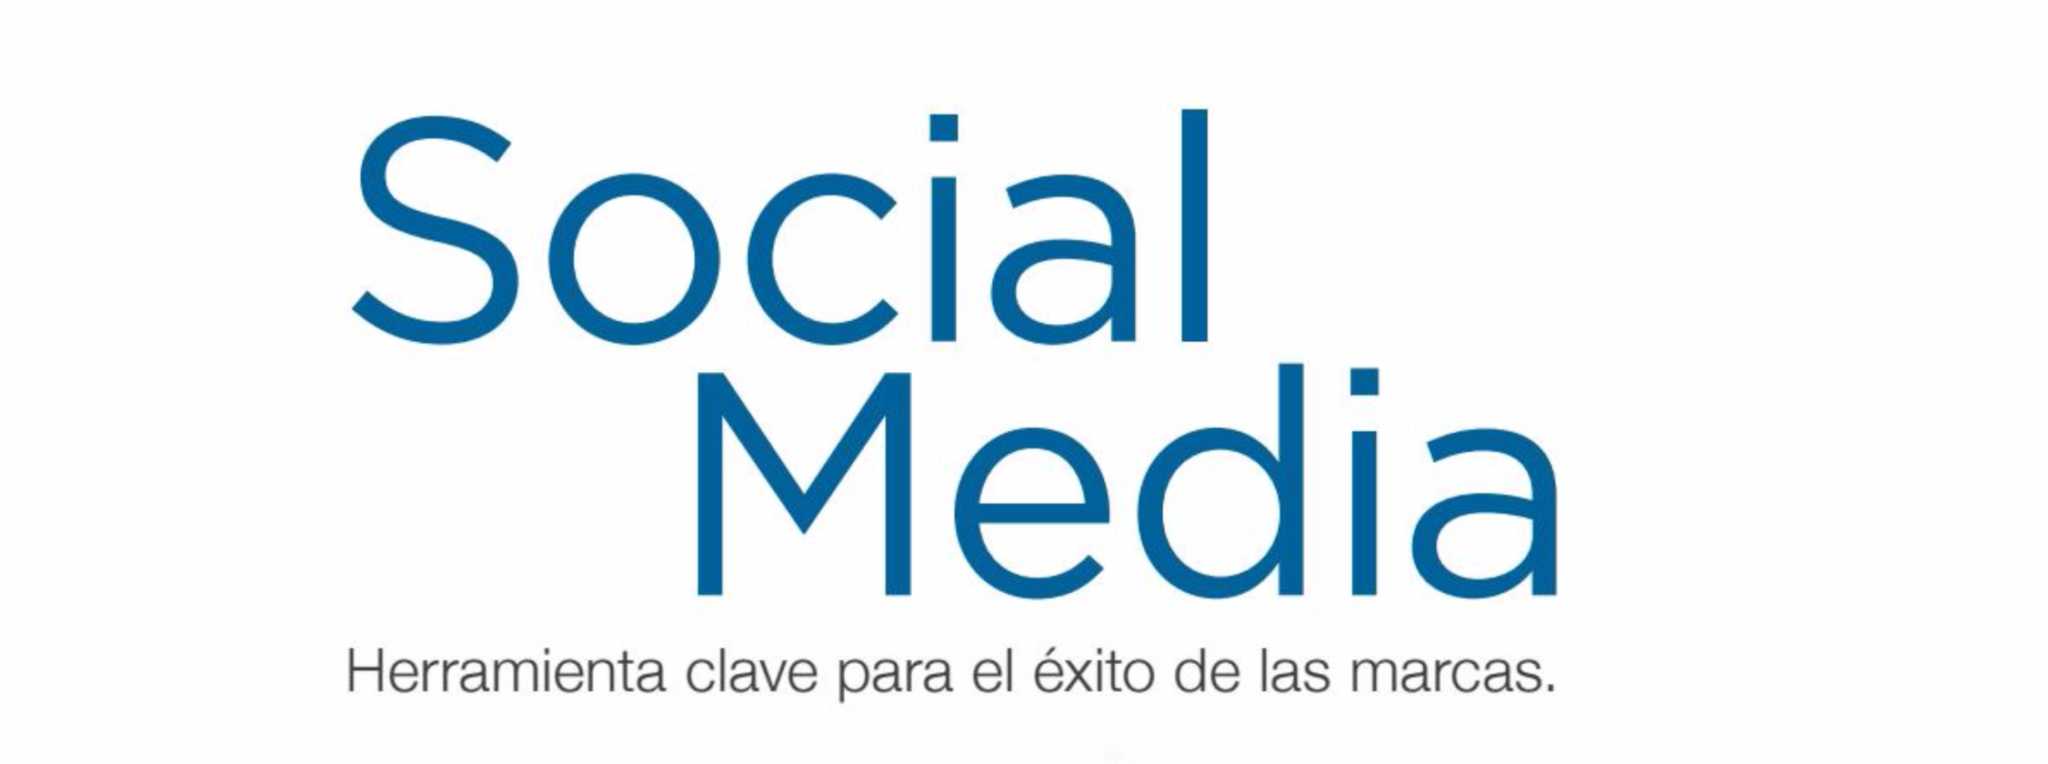 Social Media Santo Domingo Times